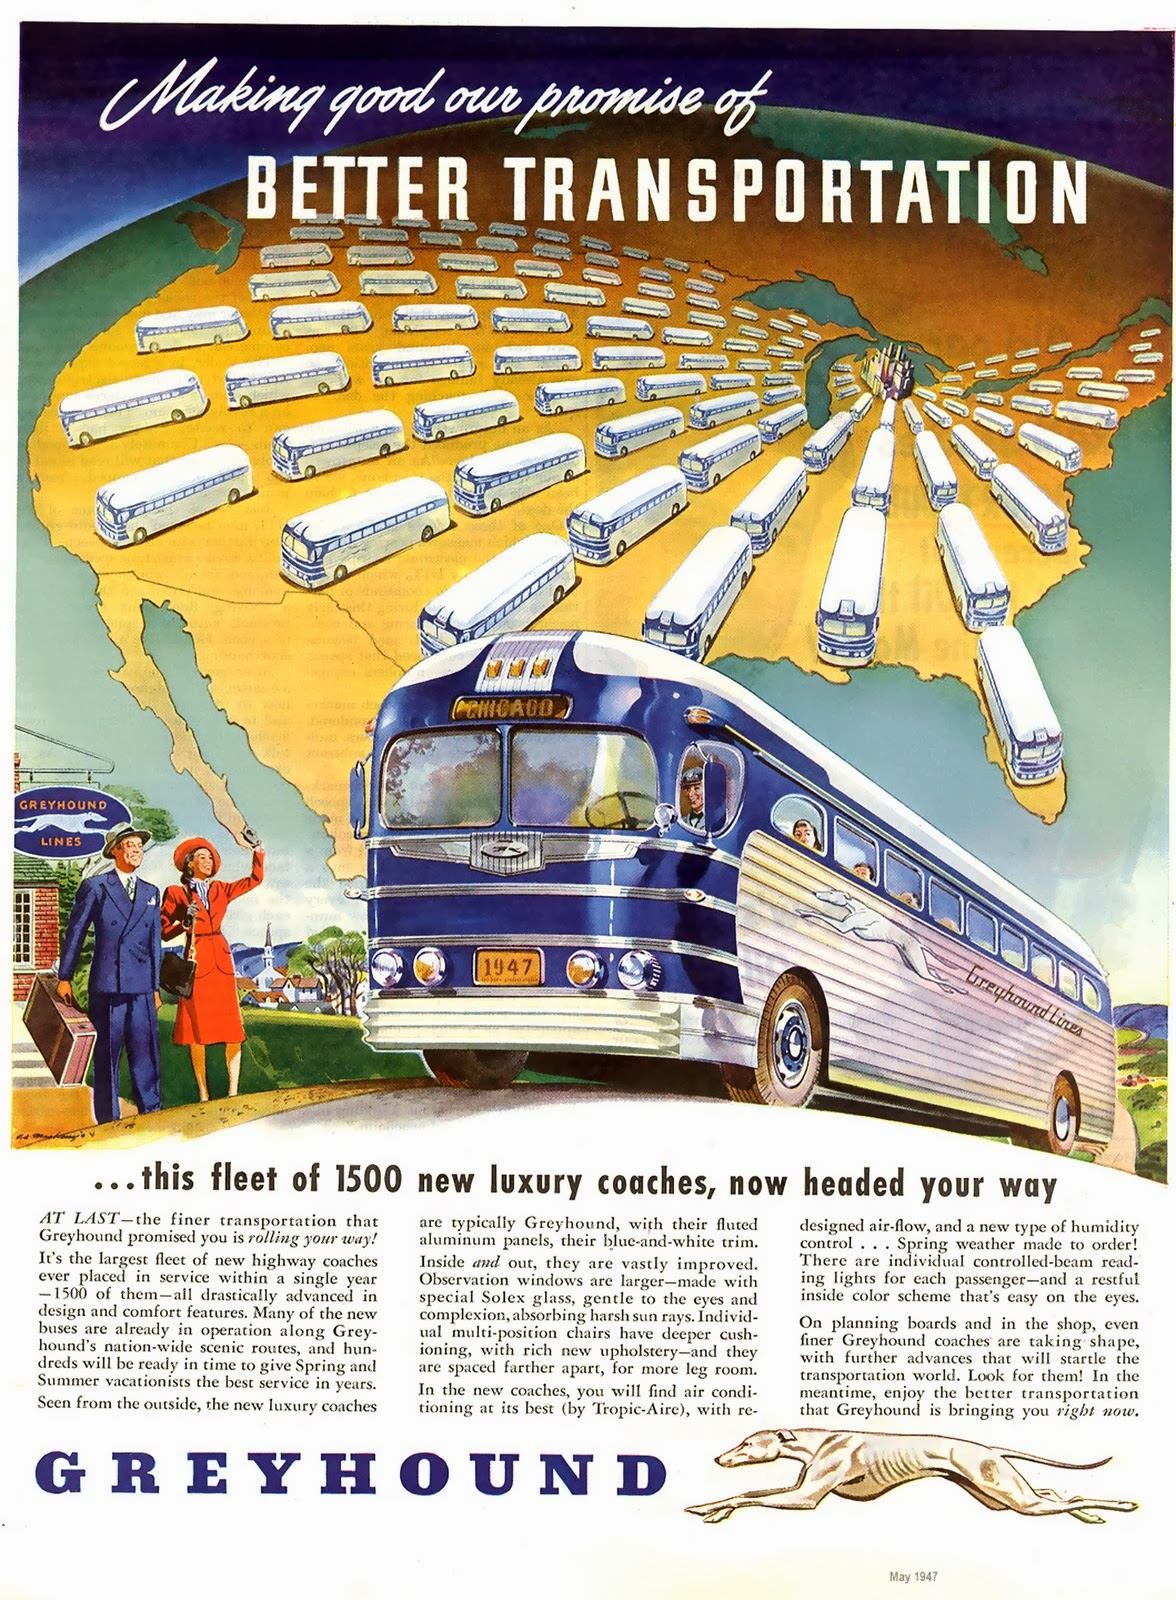 Intercity bus services are typically a gap in transportation planning